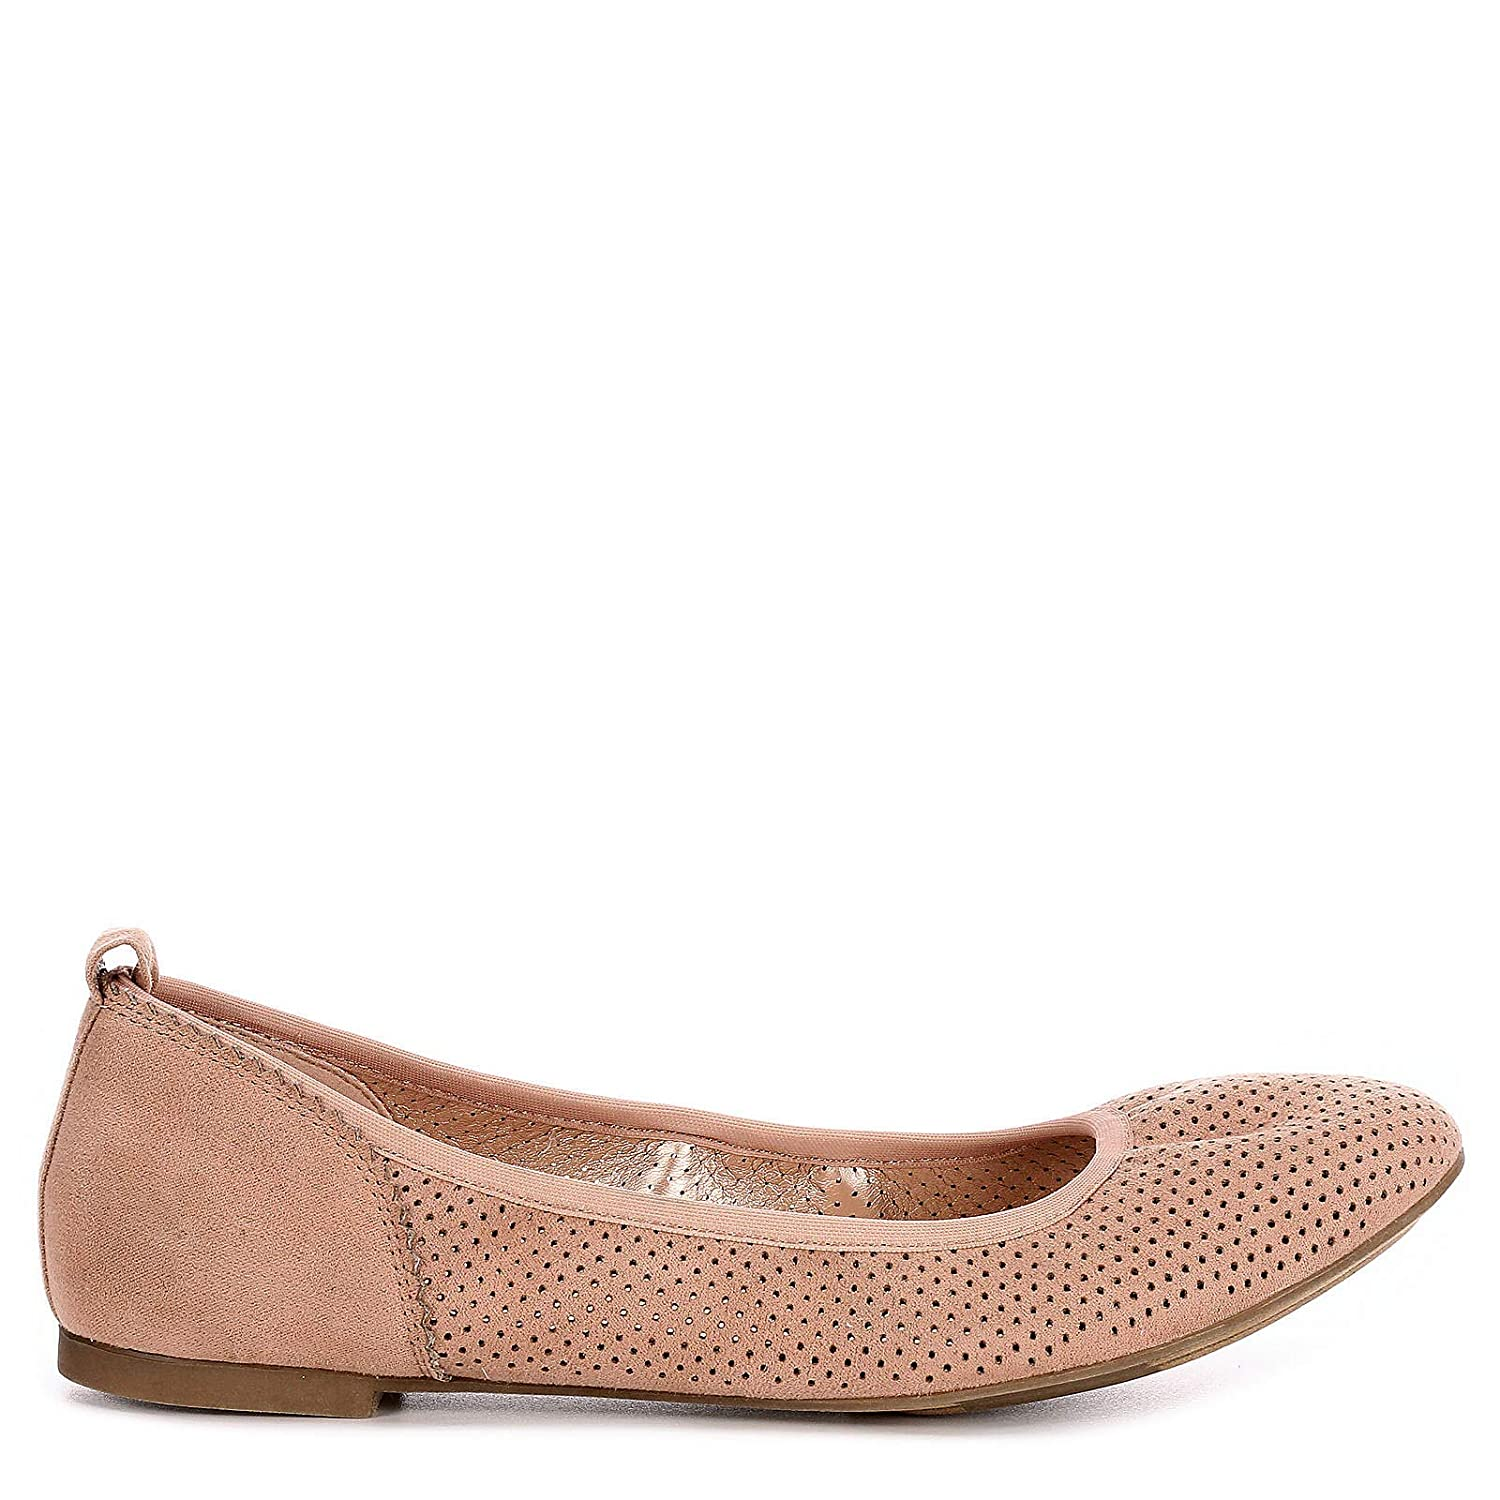 Blush XAPPEAL Womens Clair Slip On Ballet Flat Shoes US 6.5